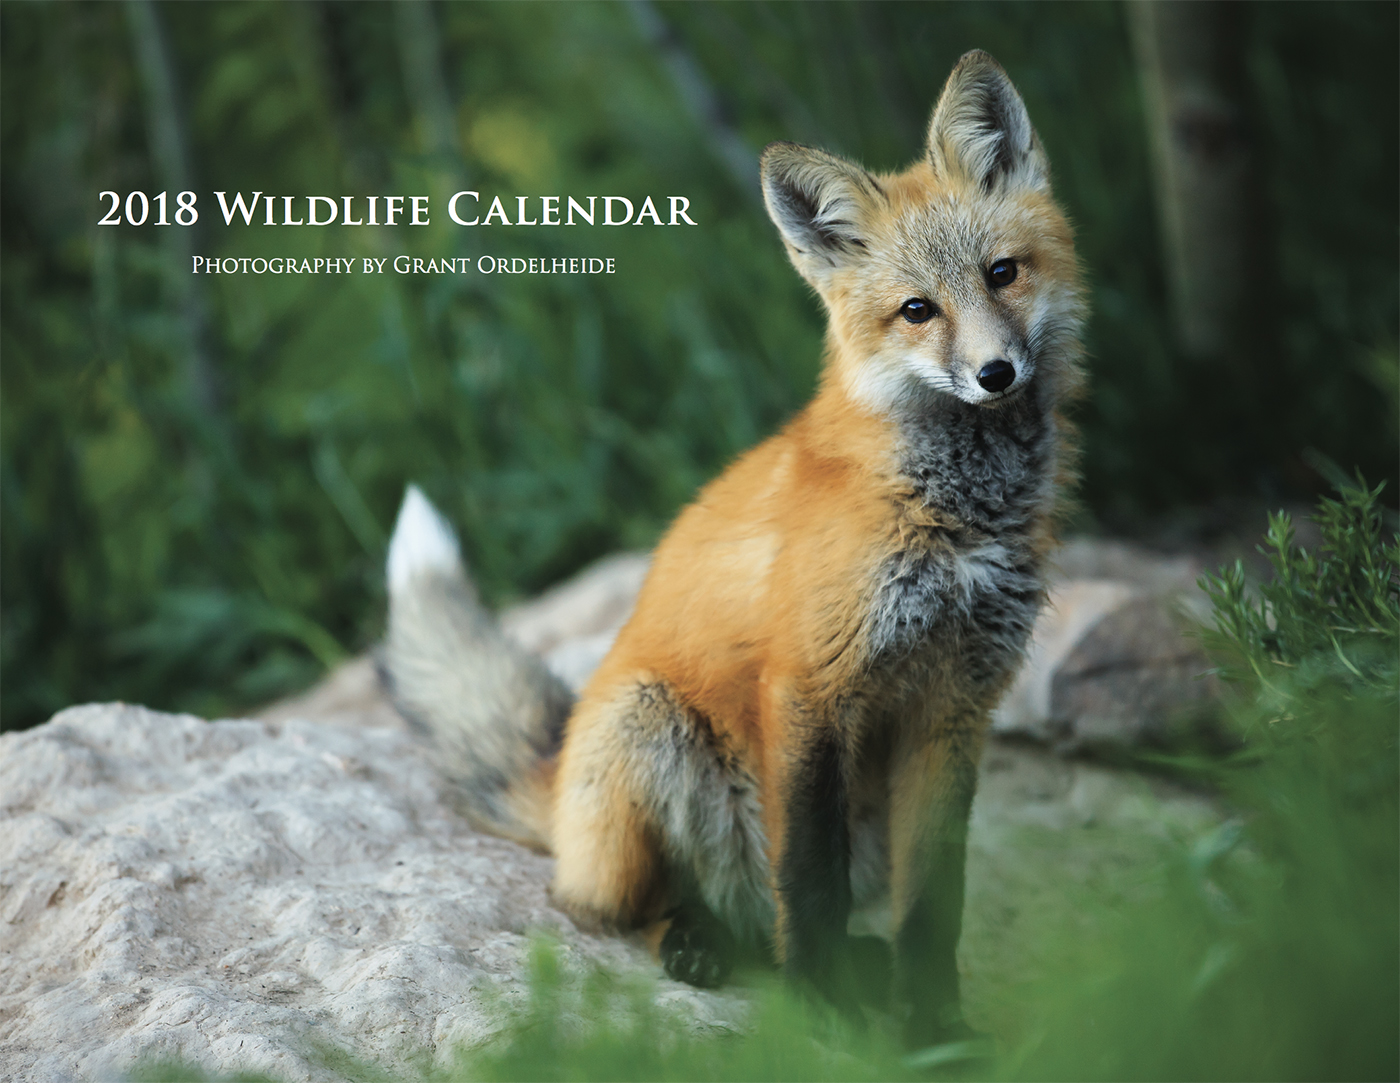 2018, wildlife, calendar, photo